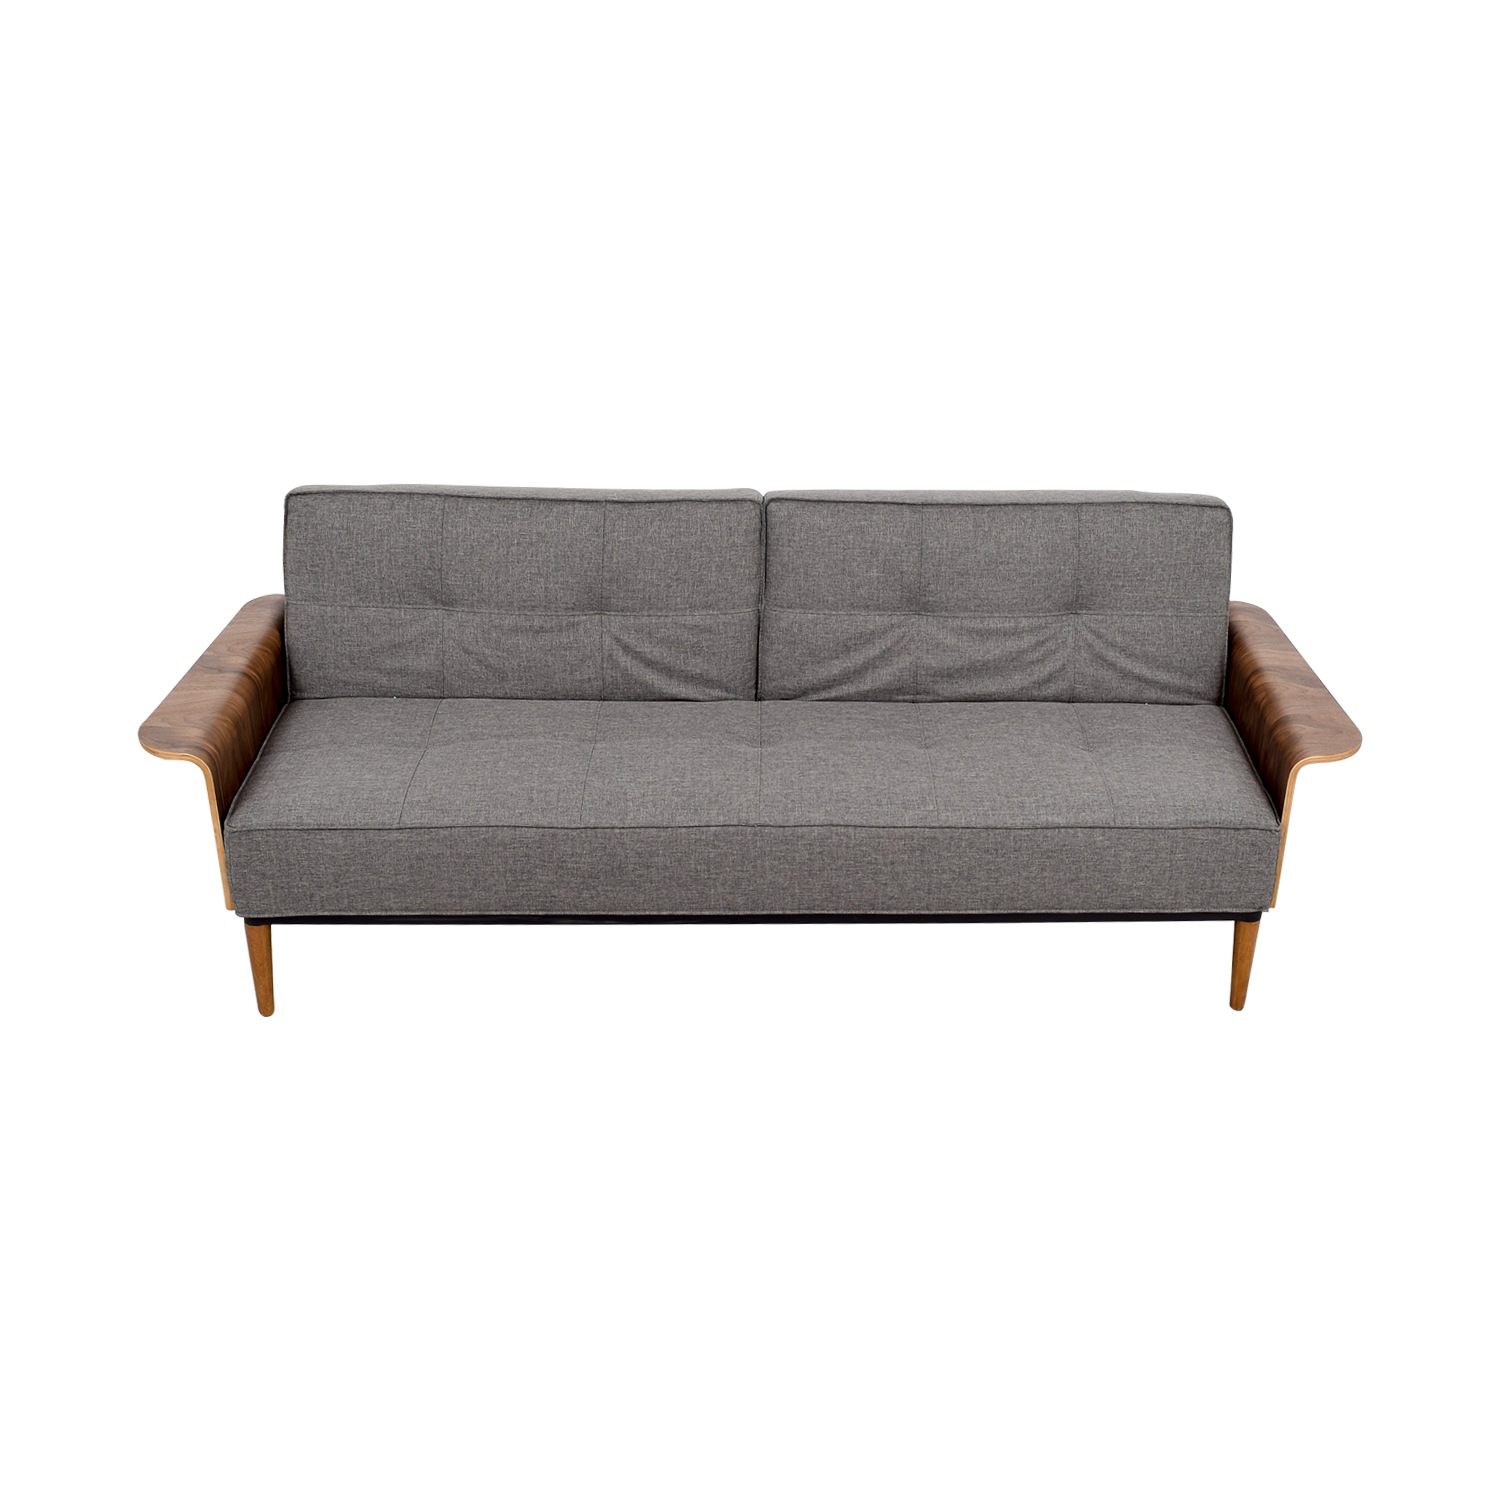 56 off inmod inmod bjorg tufted dark grey sofabed sofas for In mod furniture